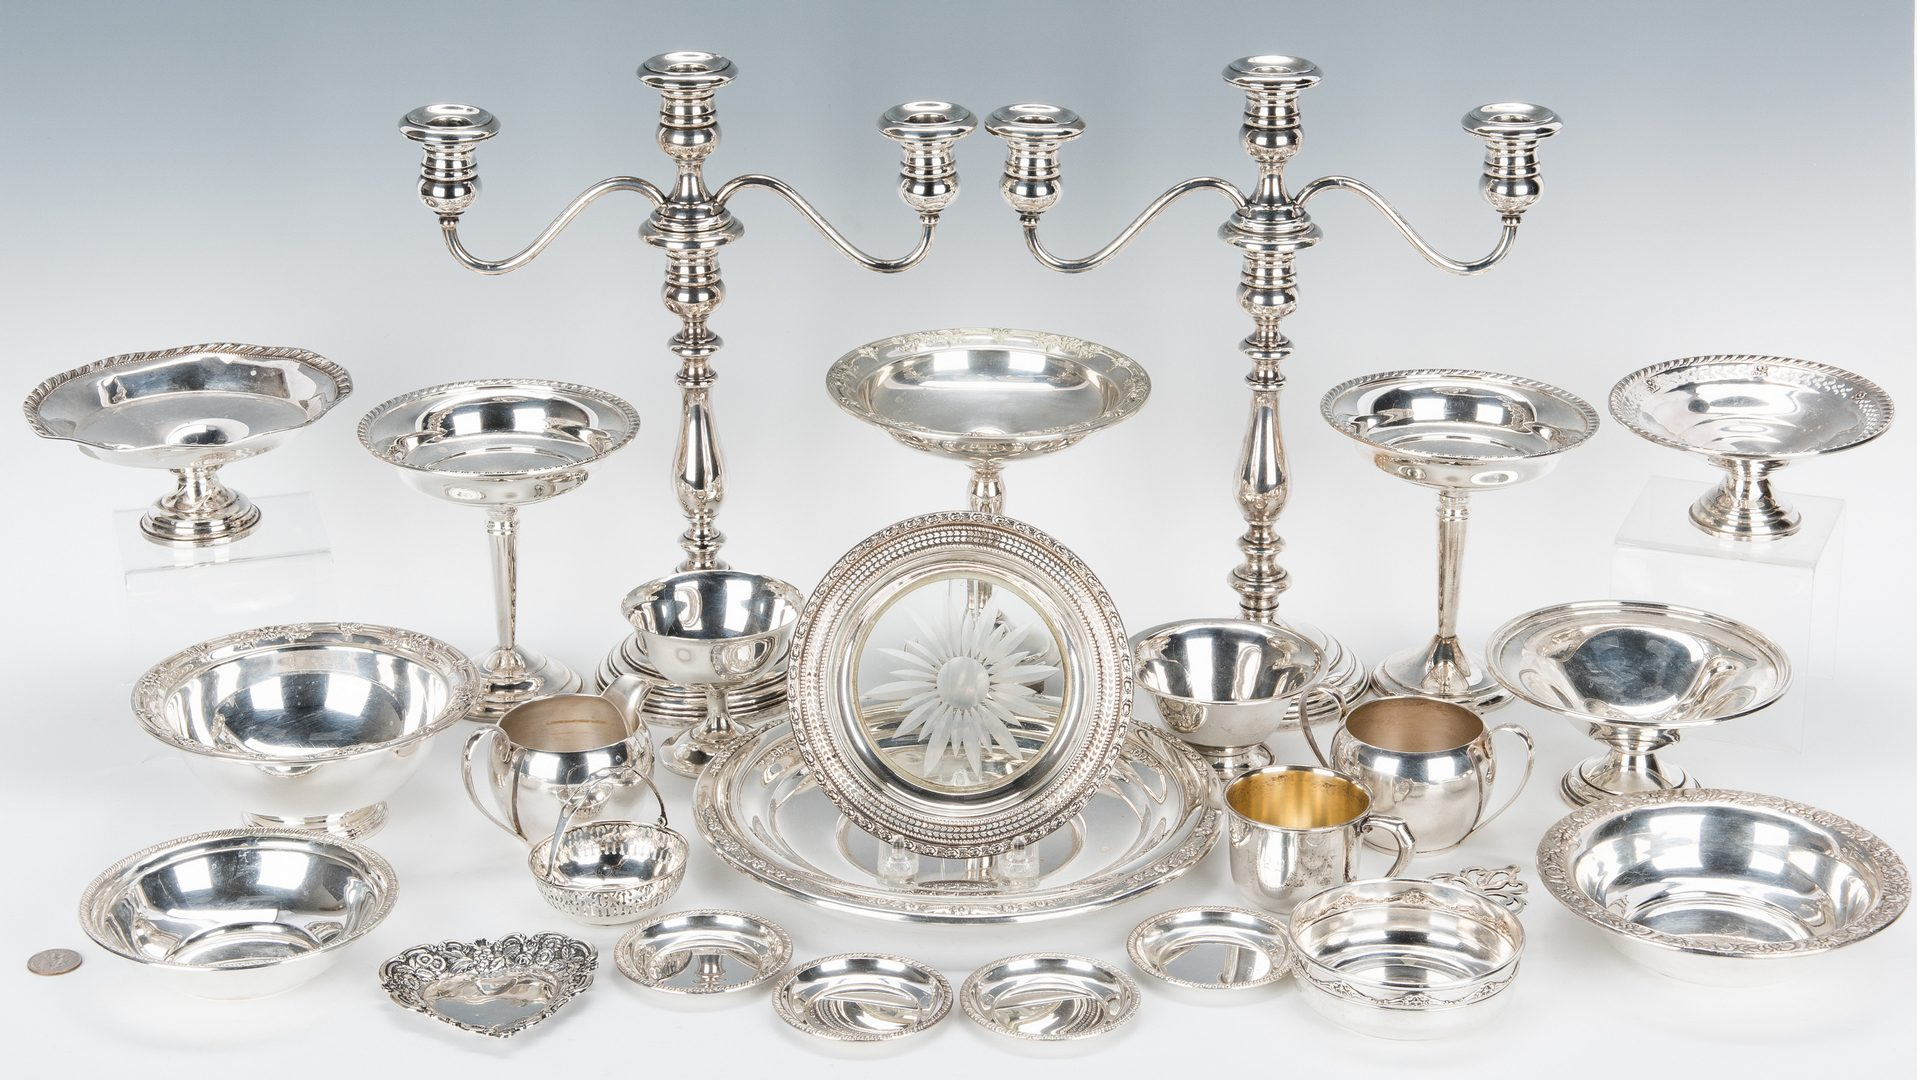 Lot 656: 25 pcs. Sterling Holloware incl. Candlesticks, Candy Dishes